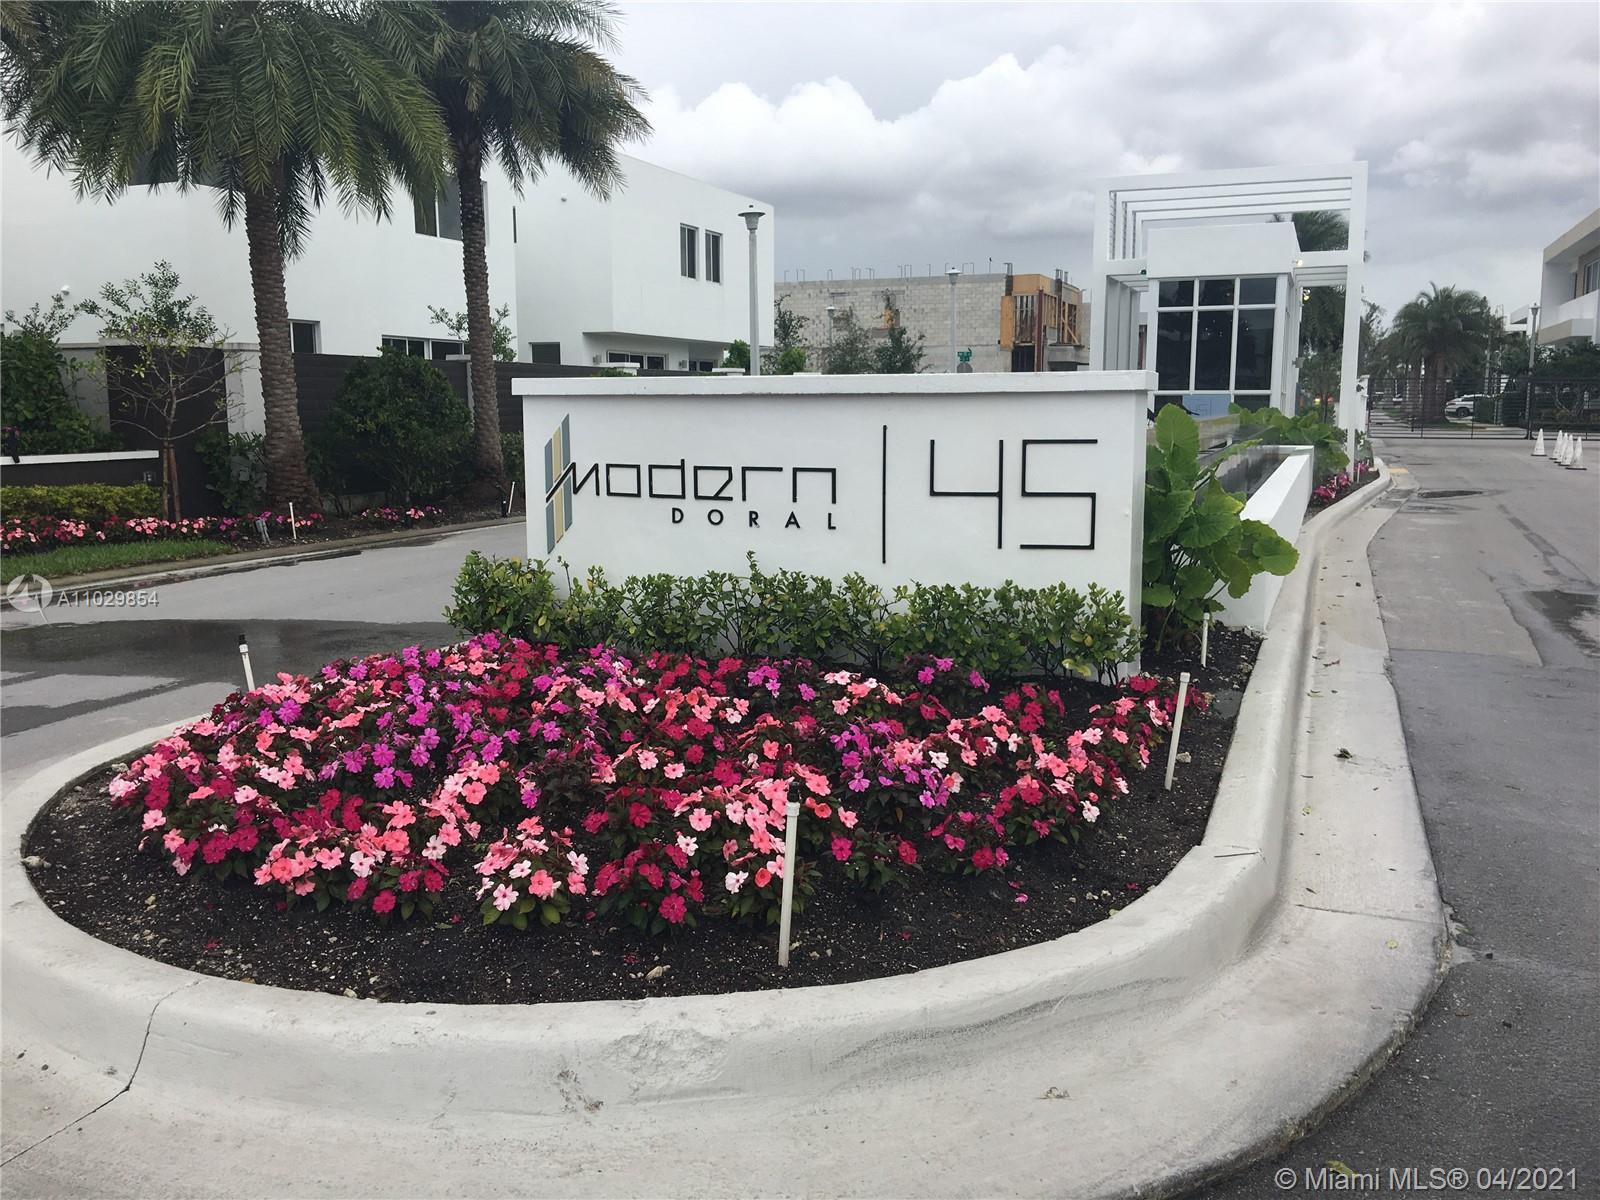 Doral Commons Residential - 9730 NW 75th Ter, Doral, FL 33178